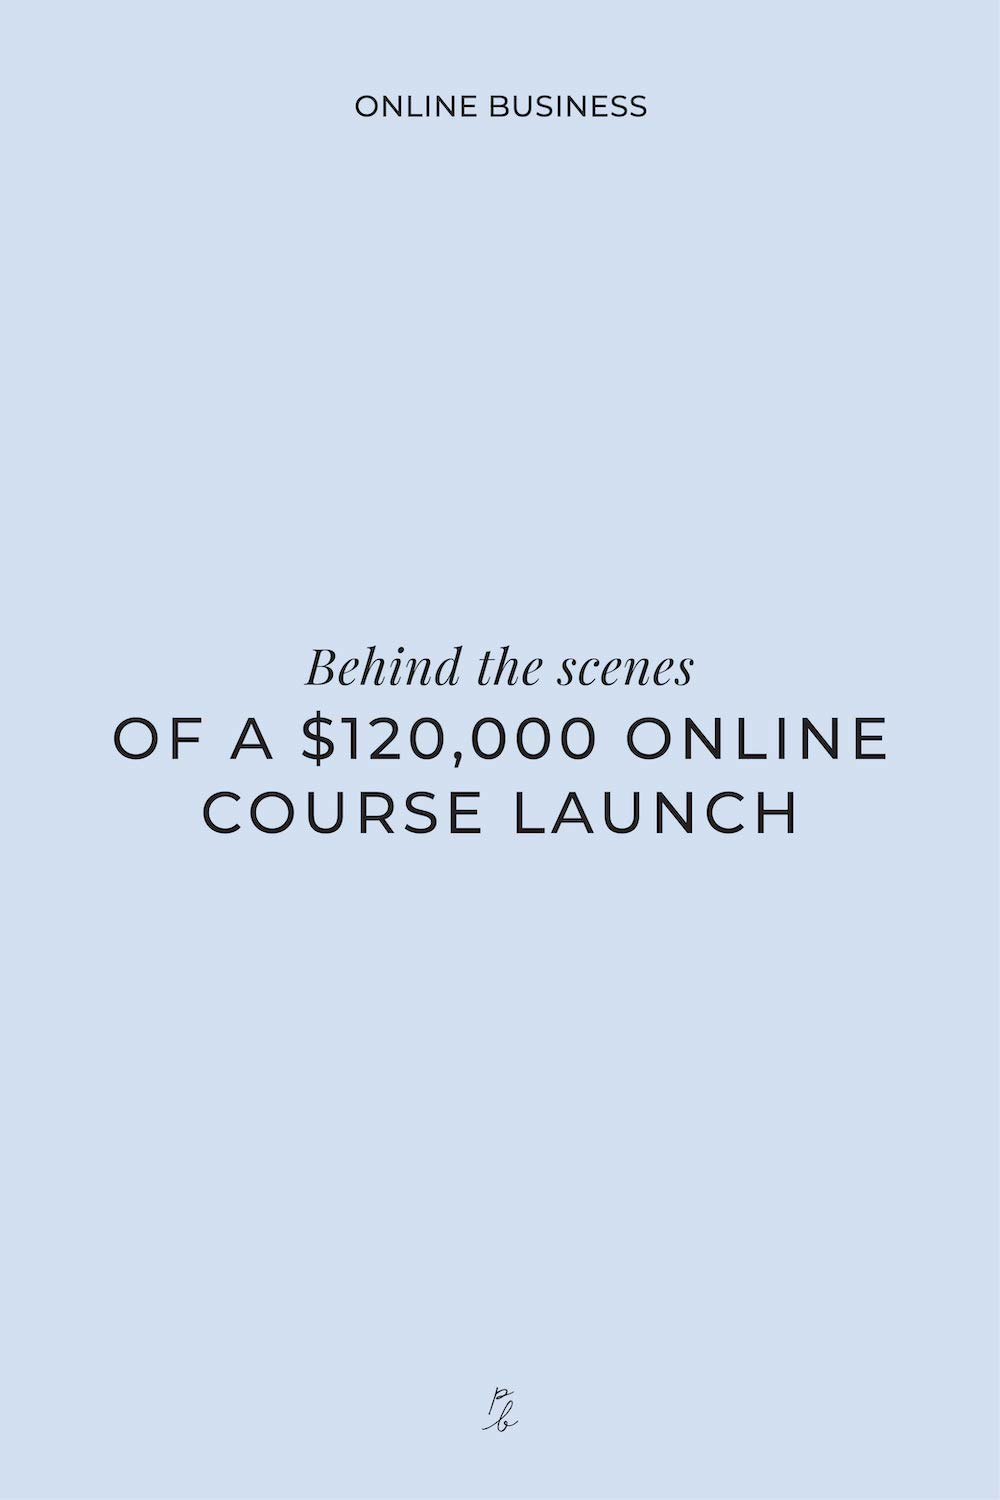 Behind the scenes of a $120000 online course launch-3.jpg